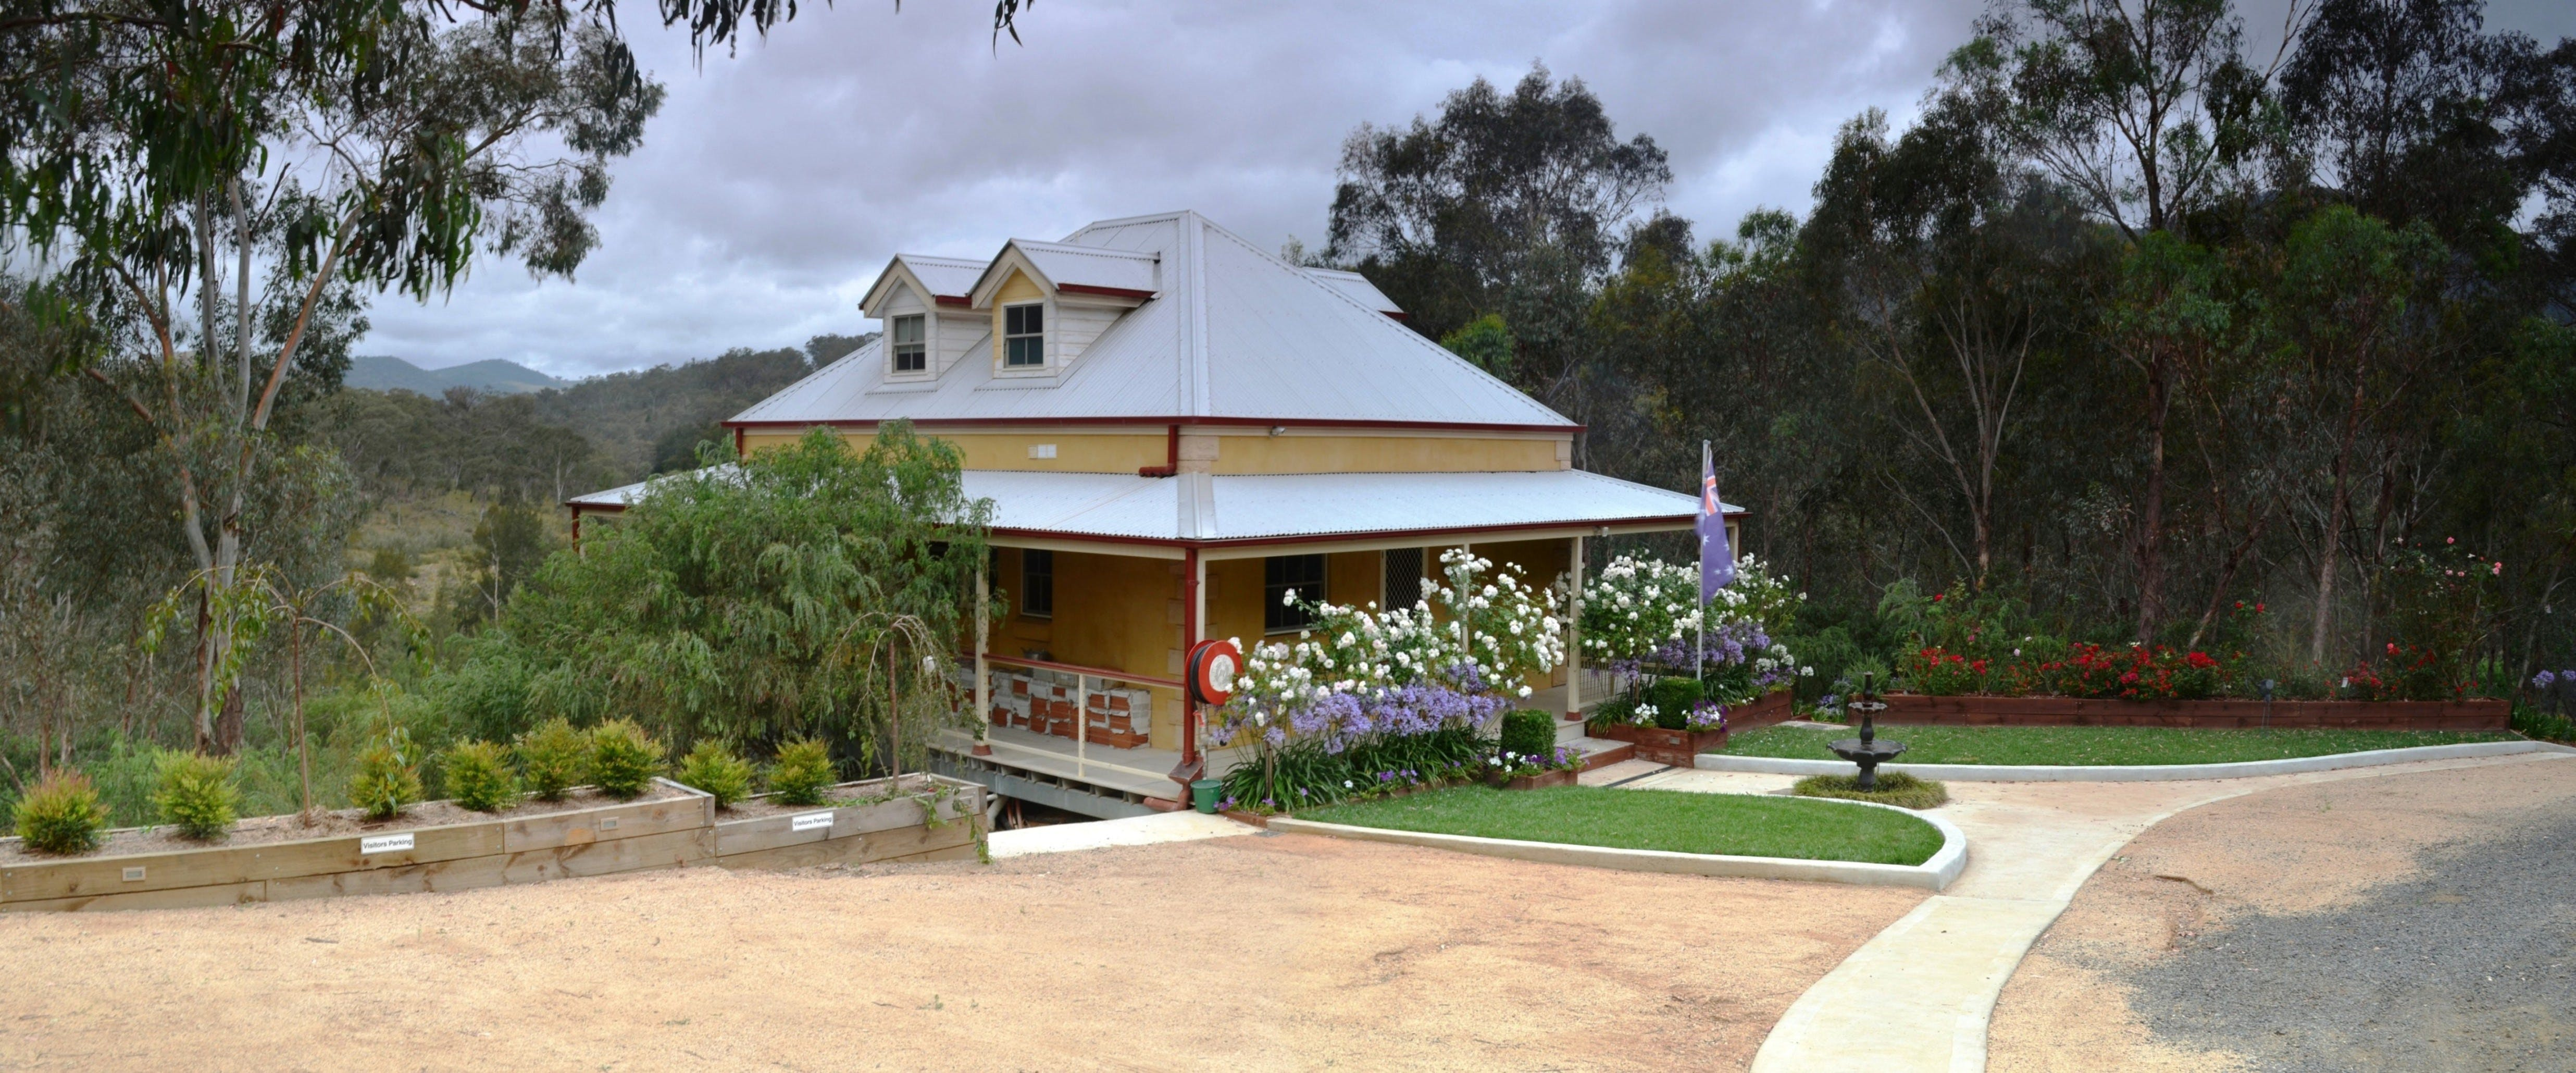 Tanwarra Lodge Bed and Breakfast - Coogee Beach Accommodation